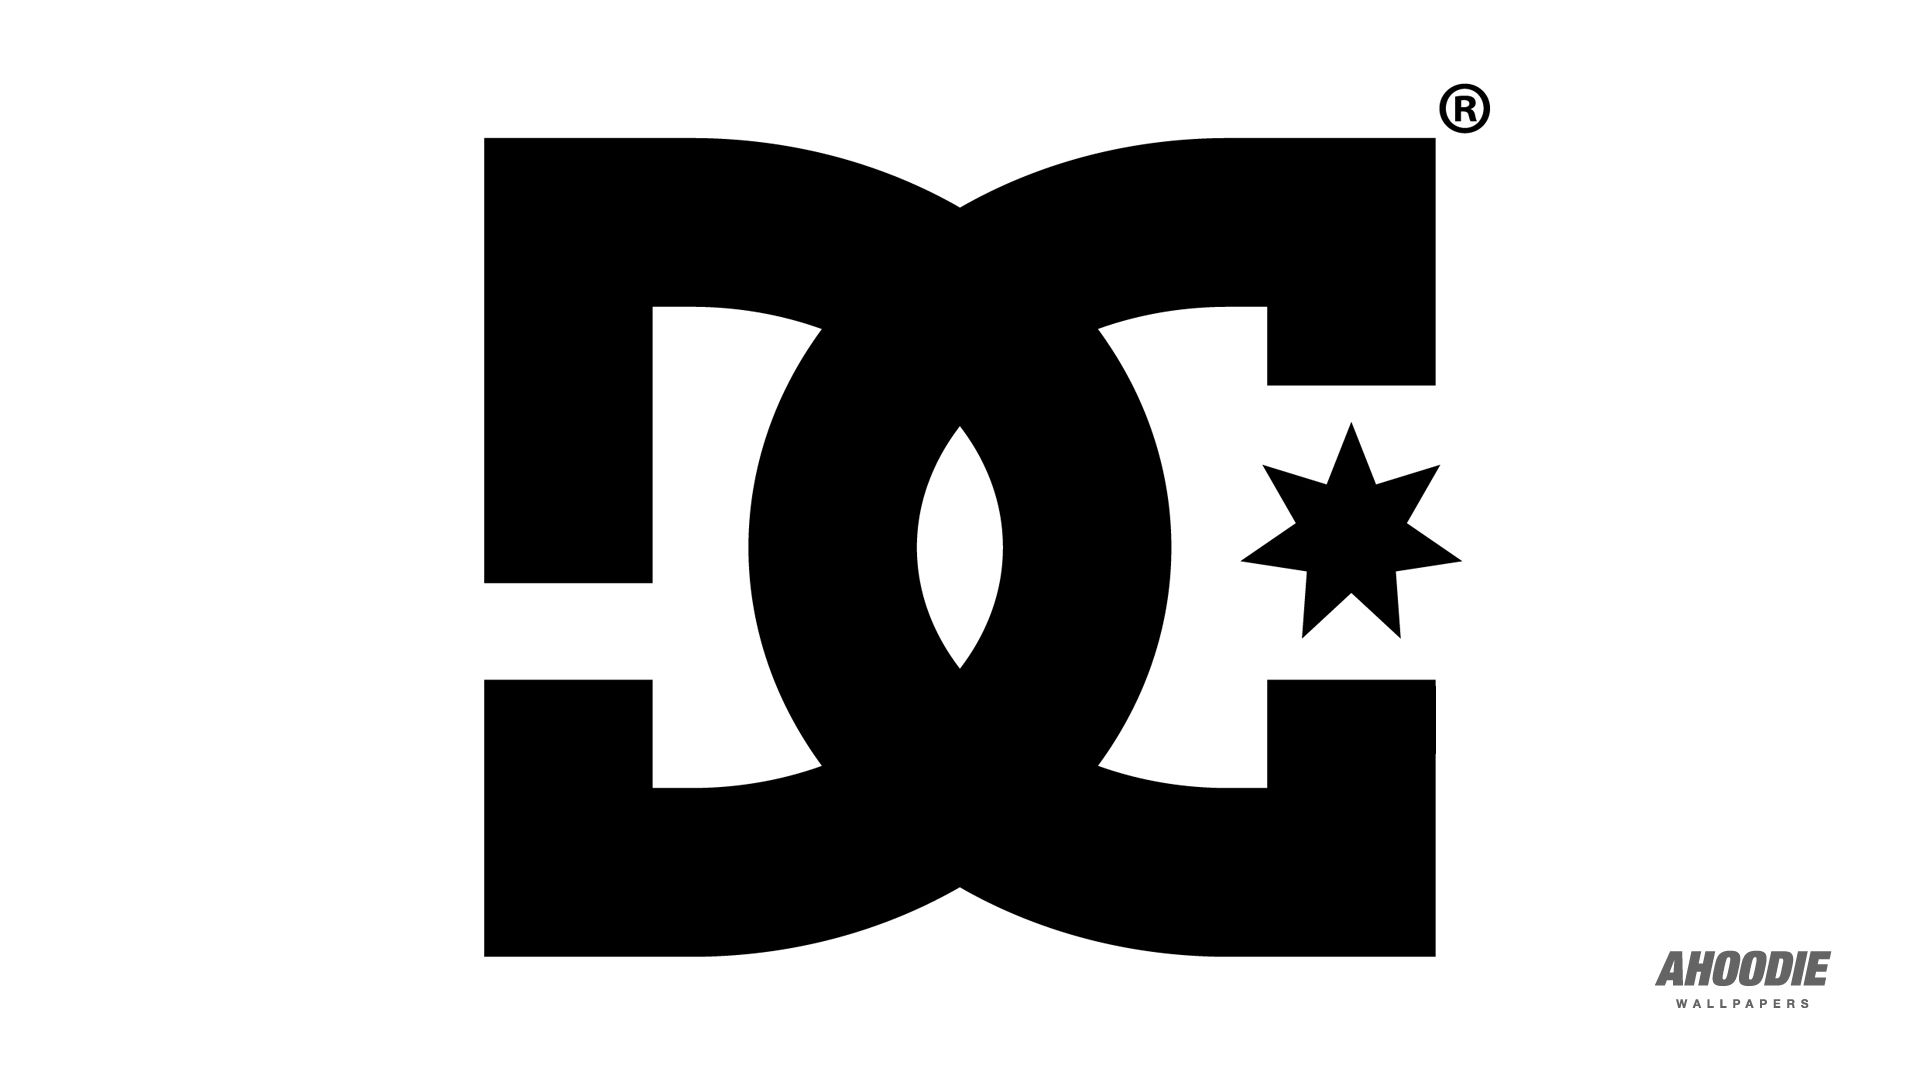 Dc shoes black logo white wallpaper hd high resolution